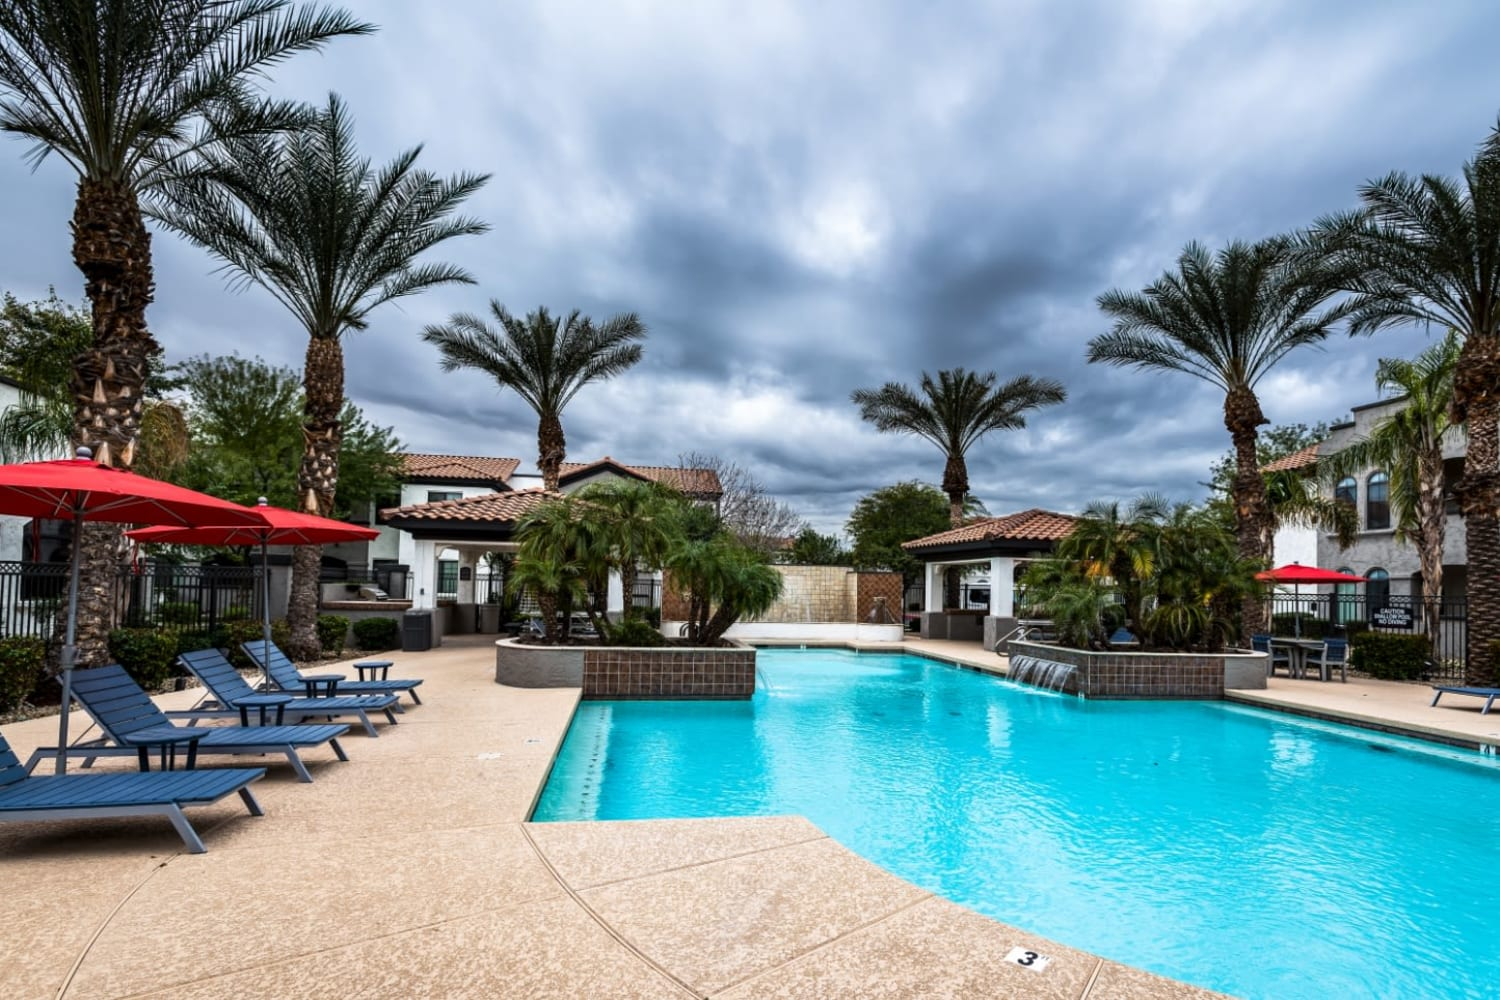 Dobson 2222 in Chandler, Arizona, offers a swimming pool